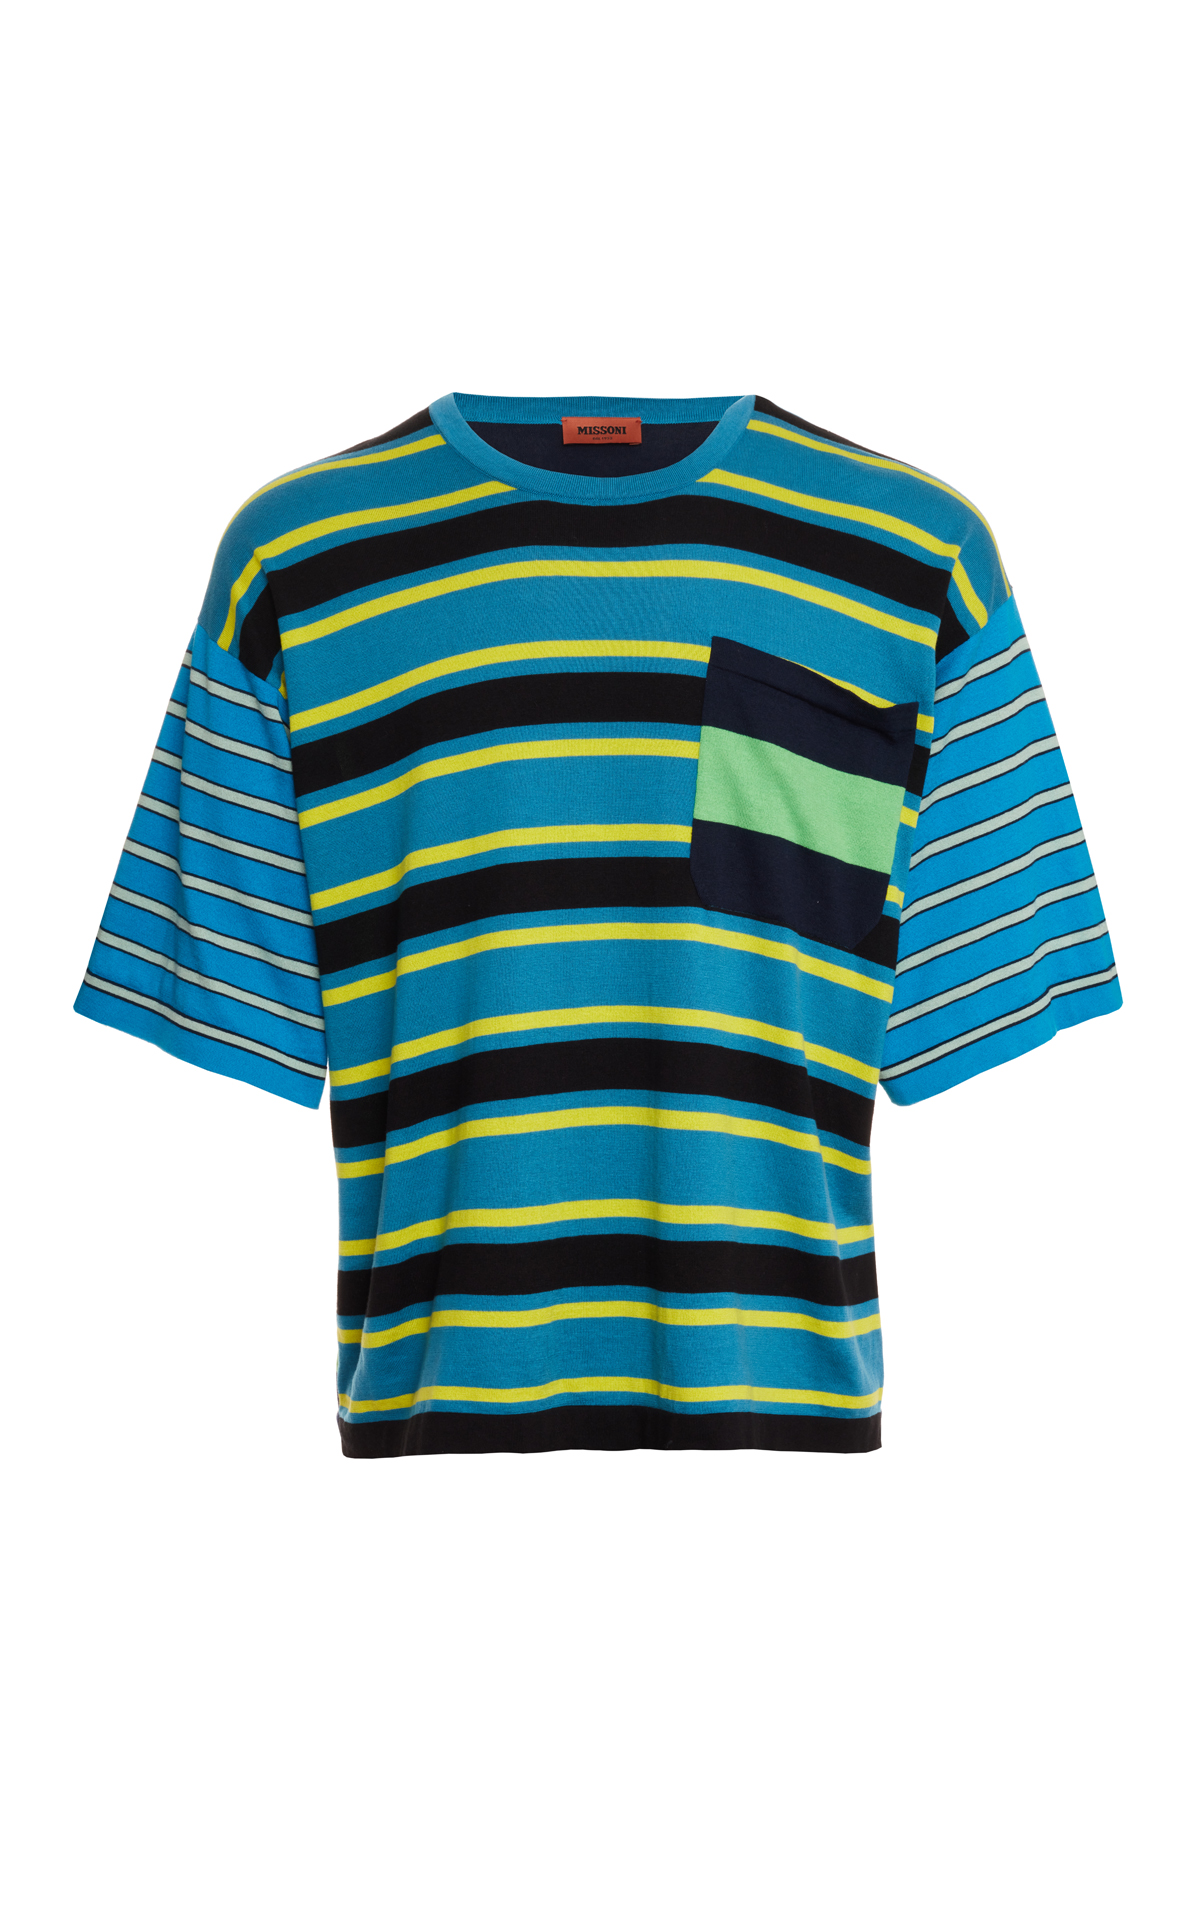 Missoni Men's stripe tee from Bicester Village